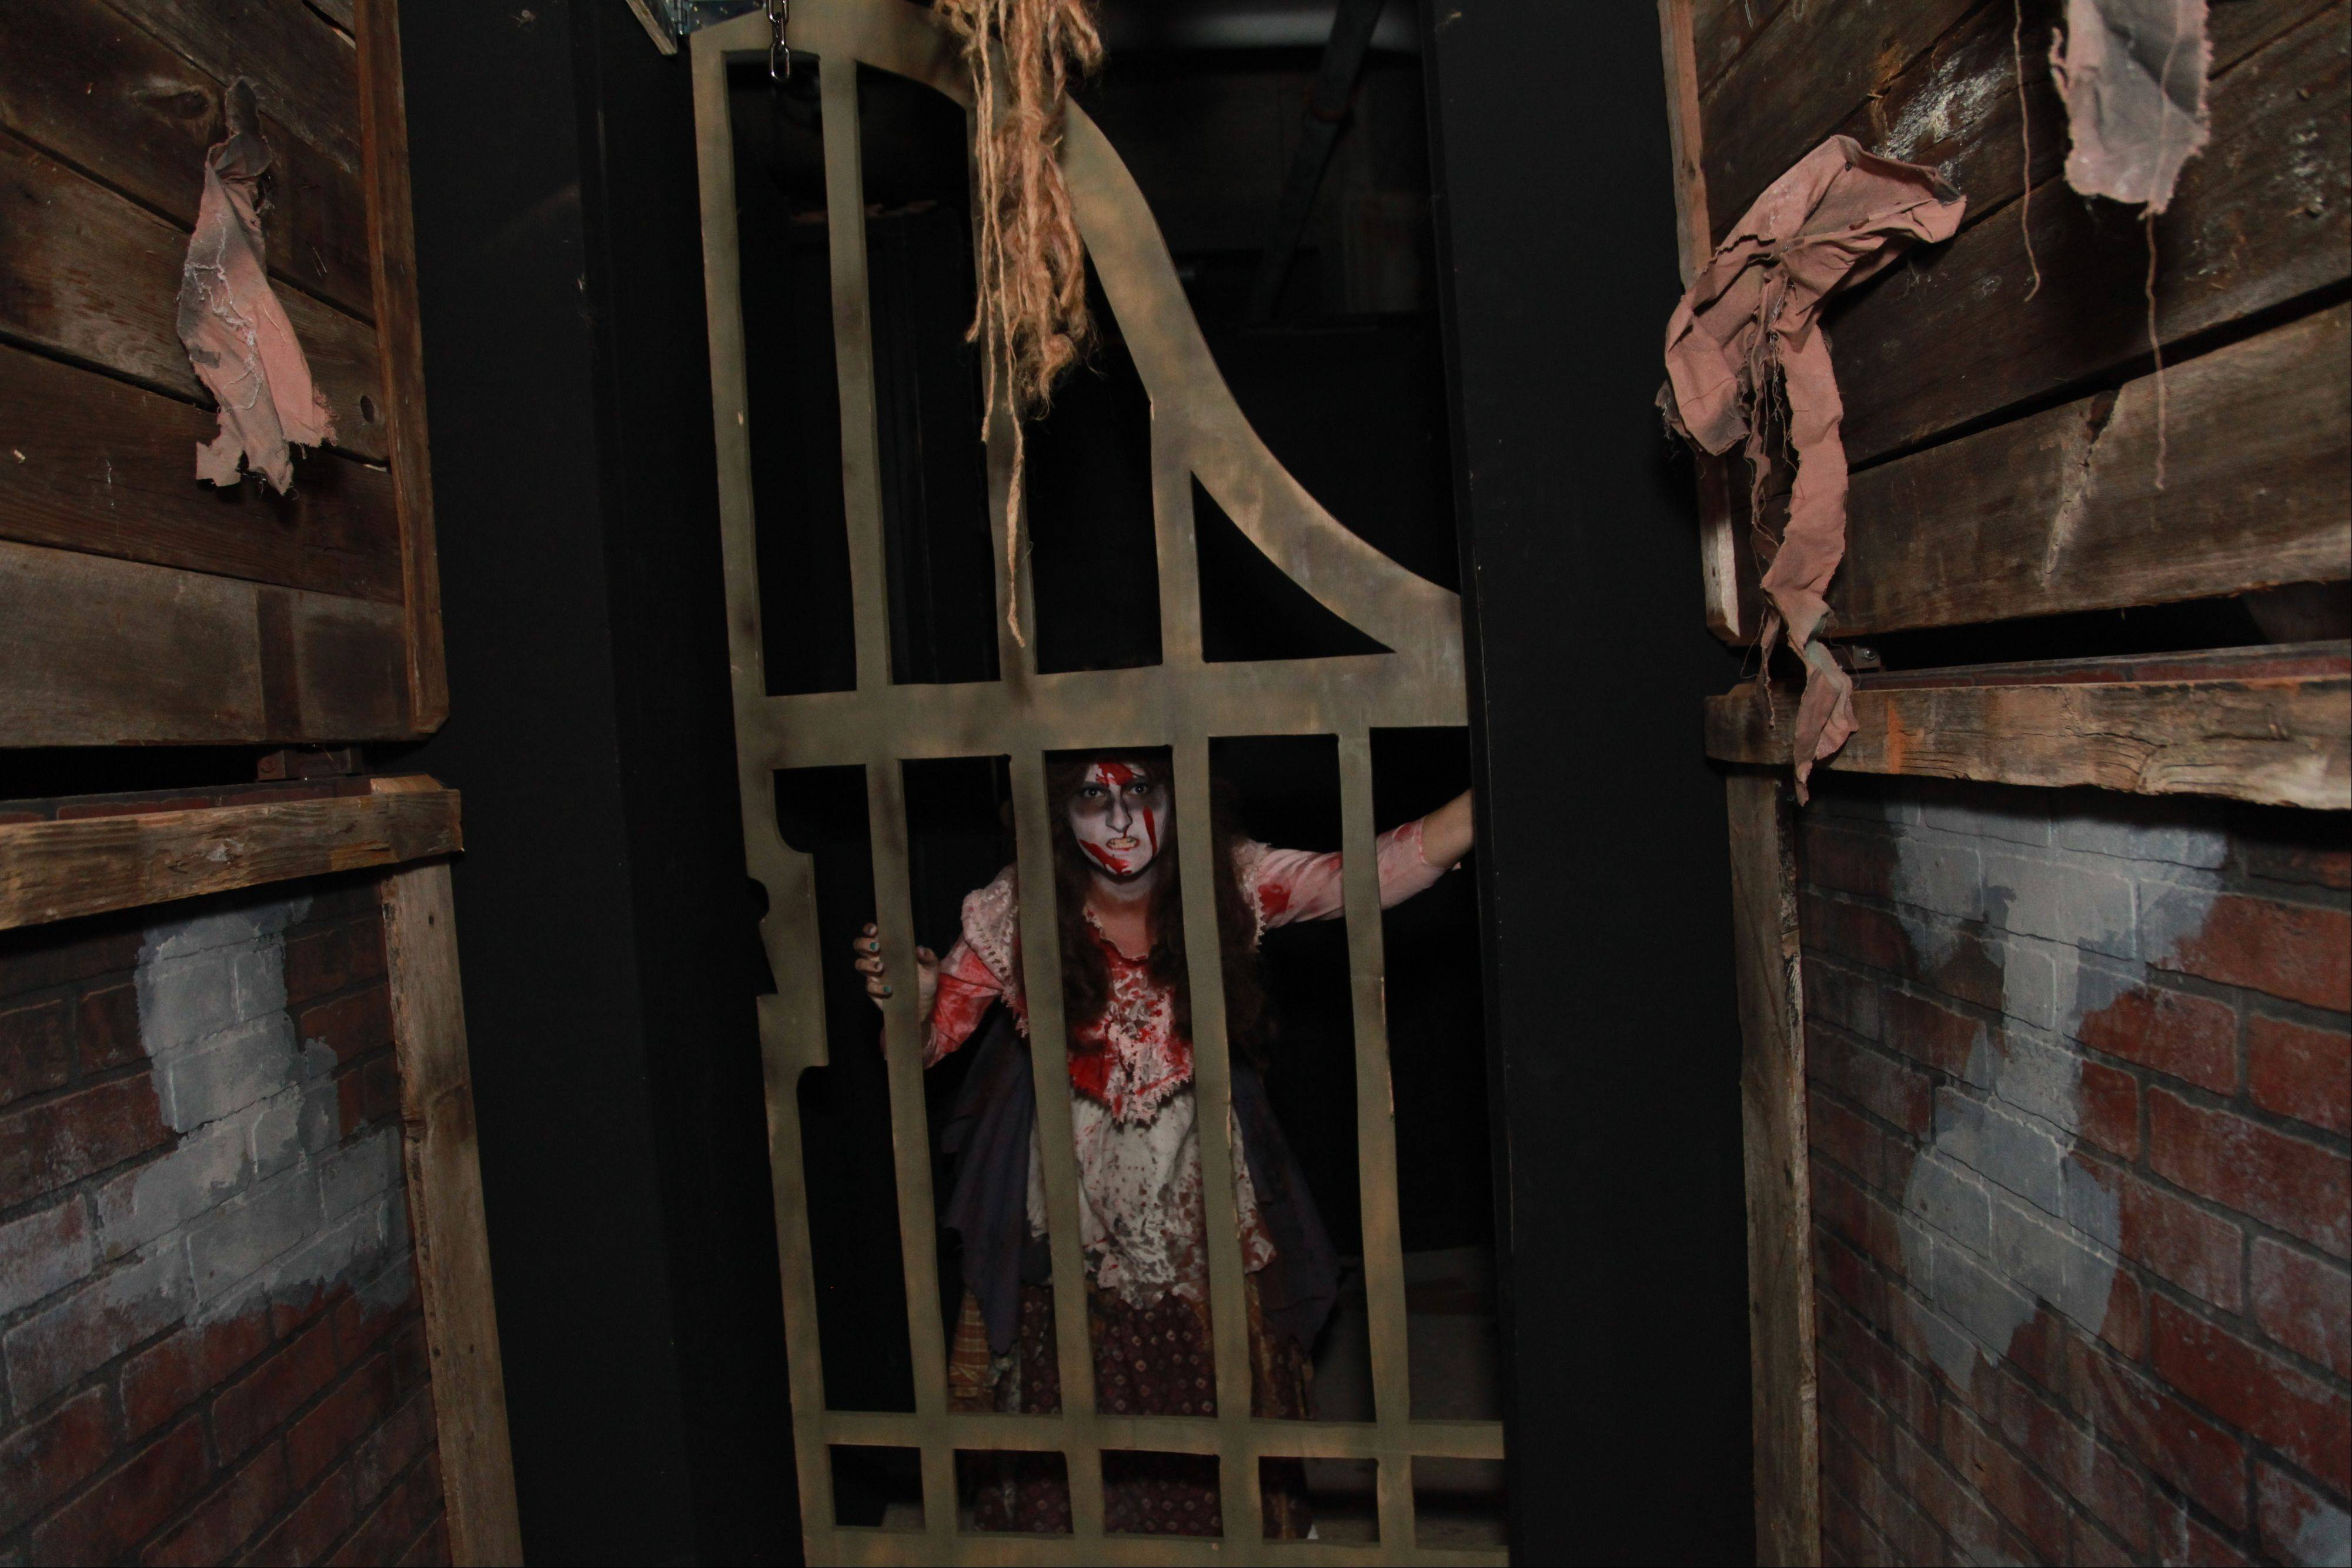 Expect plenty of simulated blood and gore at Rosemont's Screams in the Park haunted house.